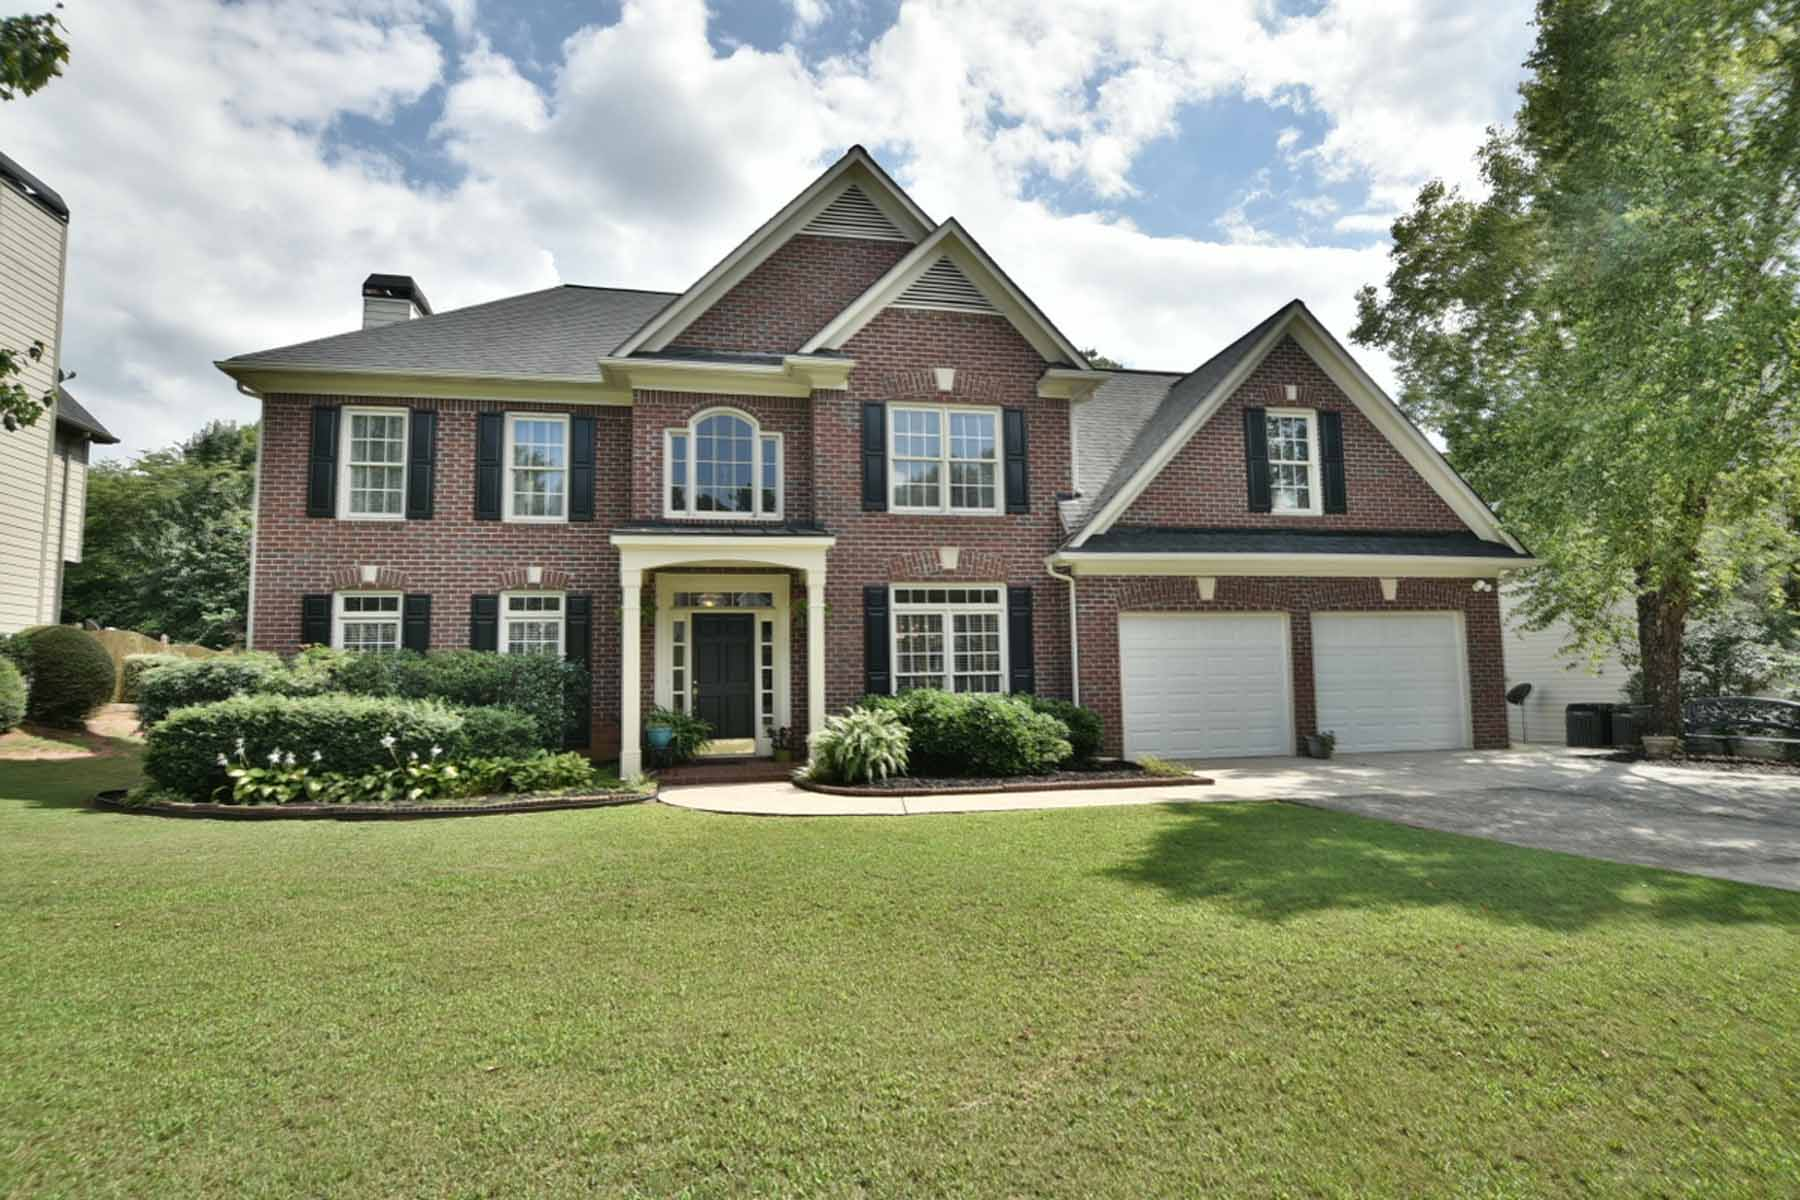 独户住宅 为 销售 在 Ideal Backyard in Active Swim/Tennis Community! 245 Devon Mill Court Johns Creek, 乔治亚州, 30005 美国